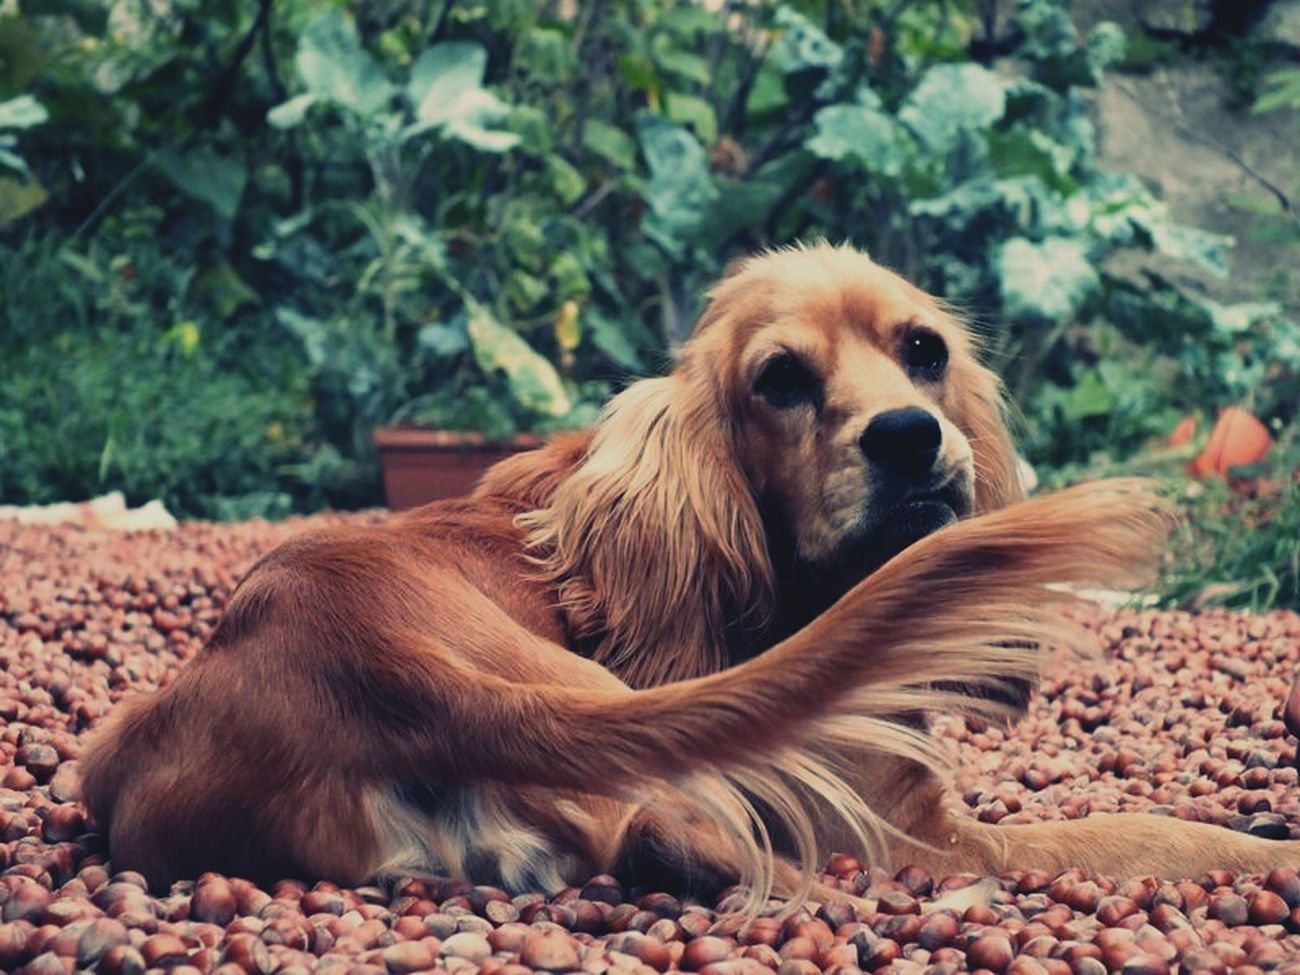 Animal Themes One Animal Relaxation Dog Mammal Domestic Animals Pets Outdoors Portrait Close-up No People Nature Day Nut Nuts Blacksea EyeEmNewHere